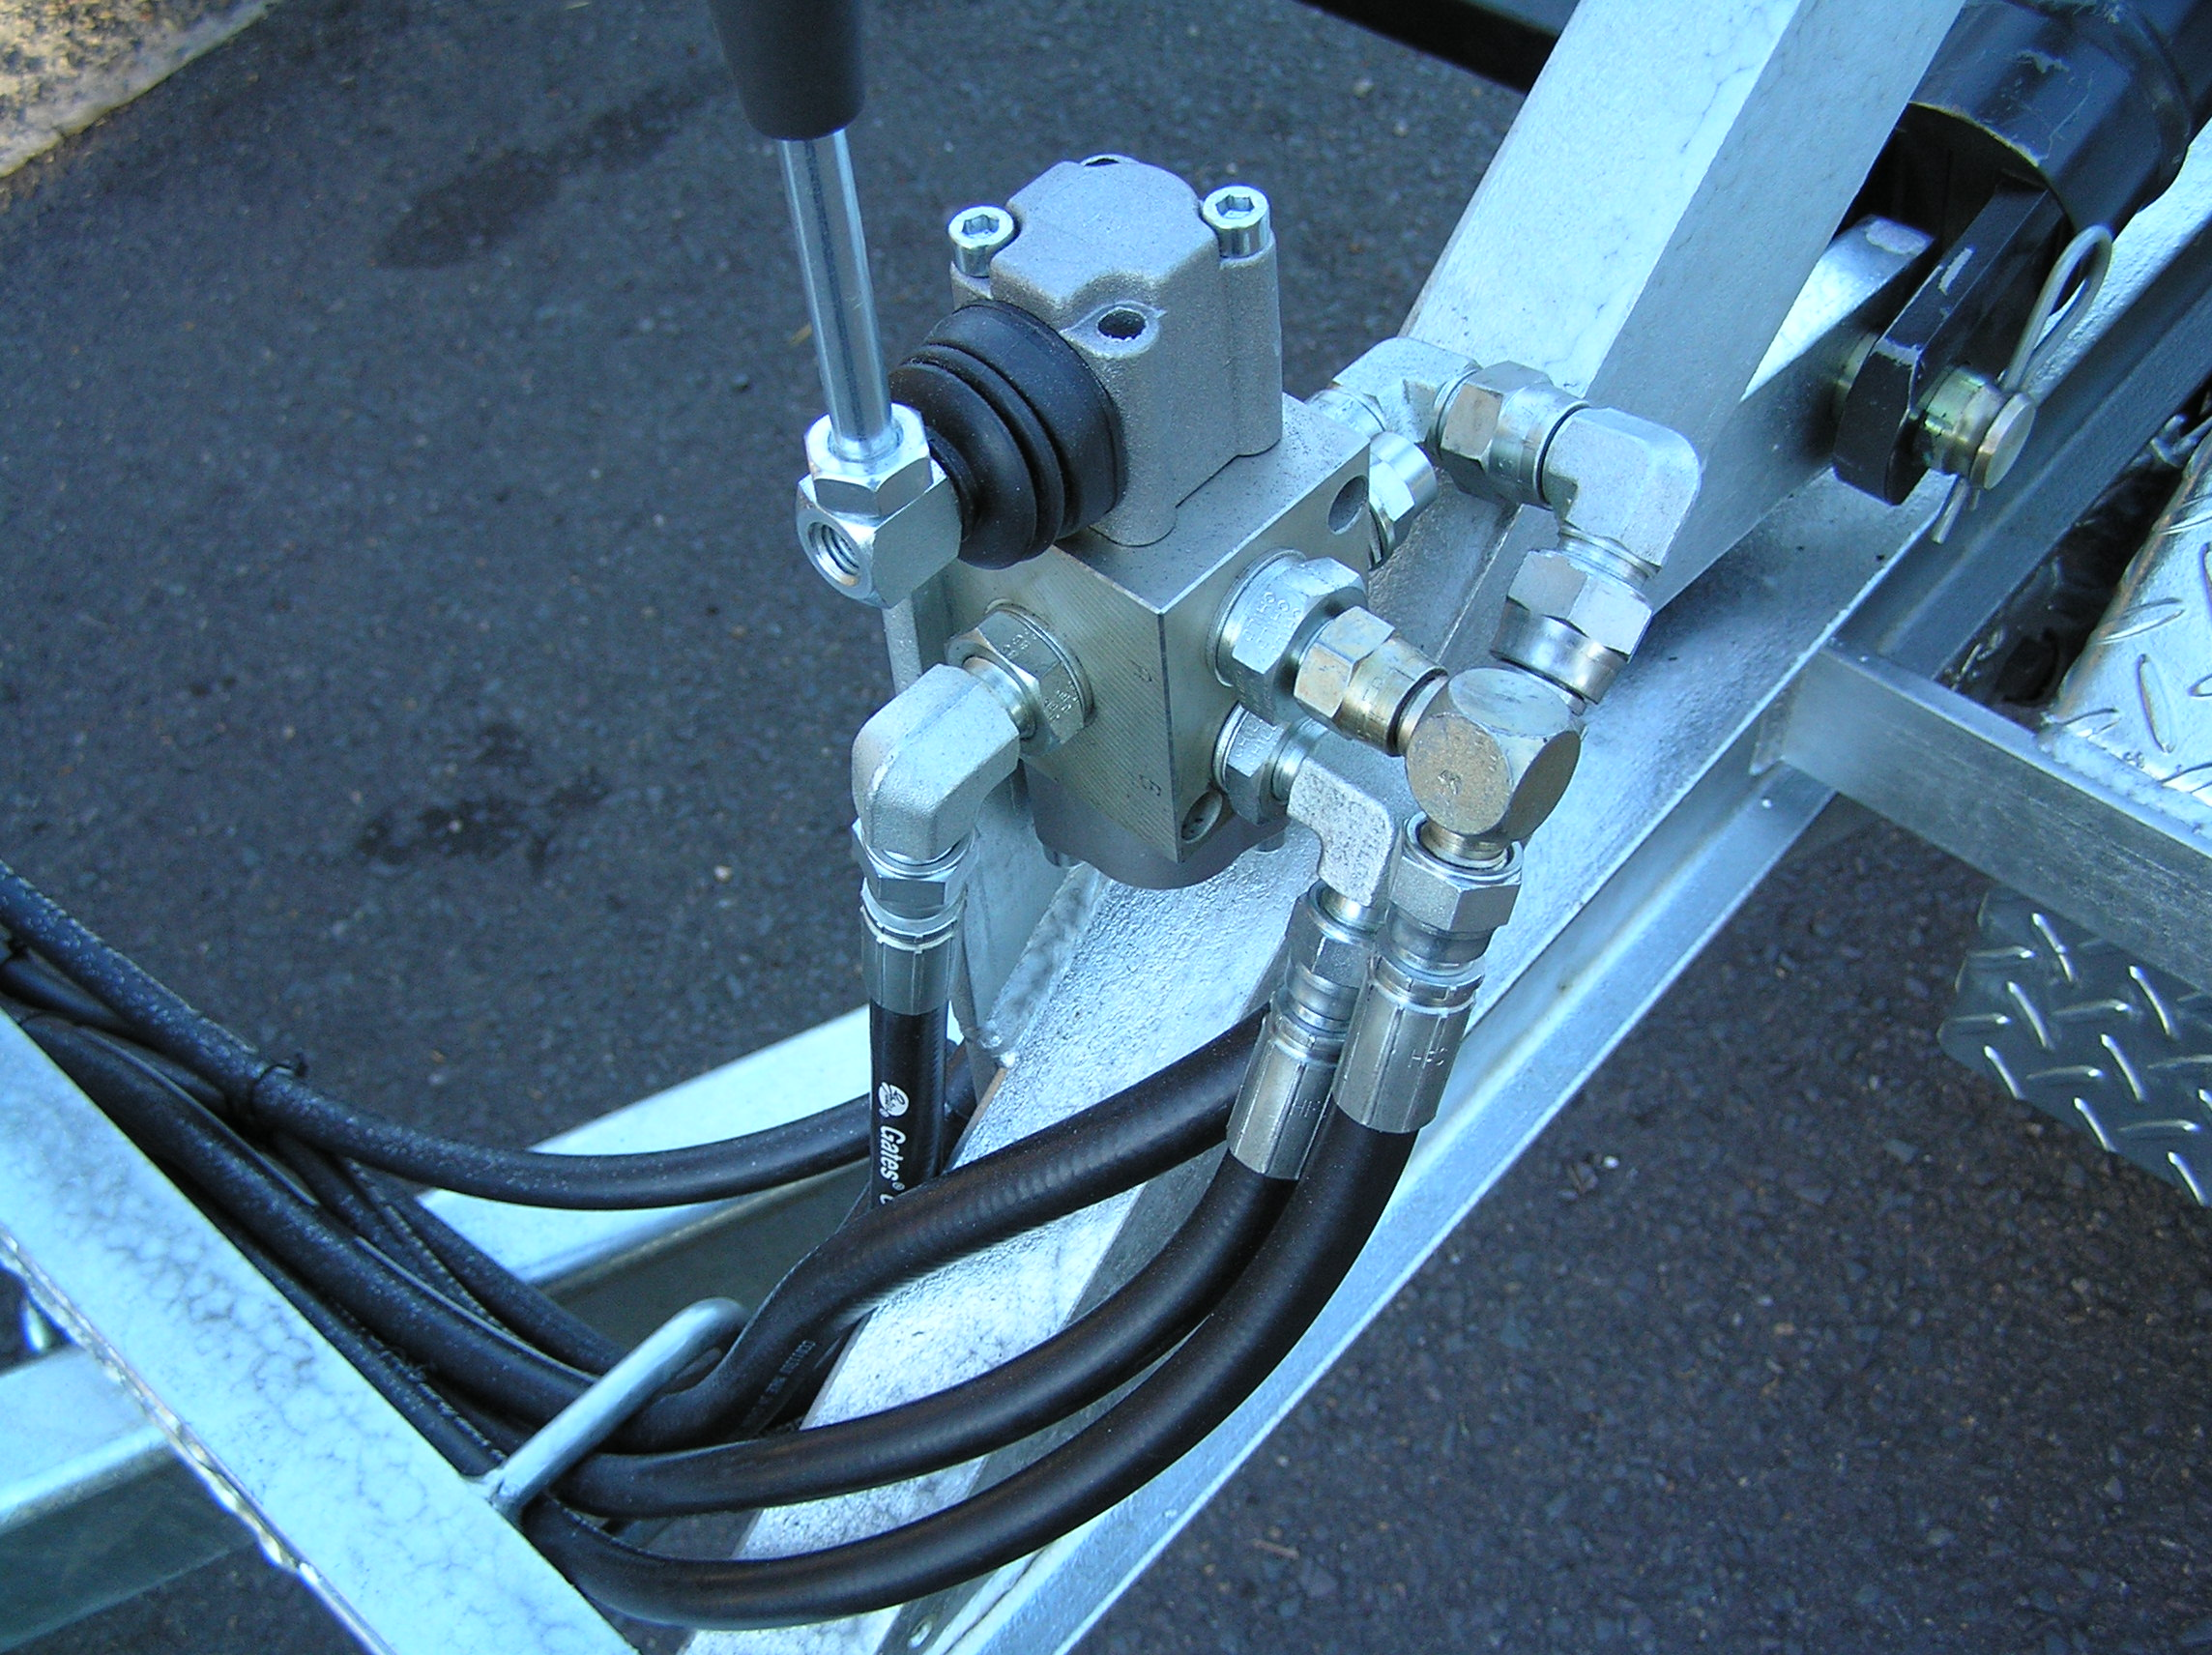 Ecowise Cable Drum 1500kgGVM Self load hydraulic #7822  SeP8240095 (17).JPG